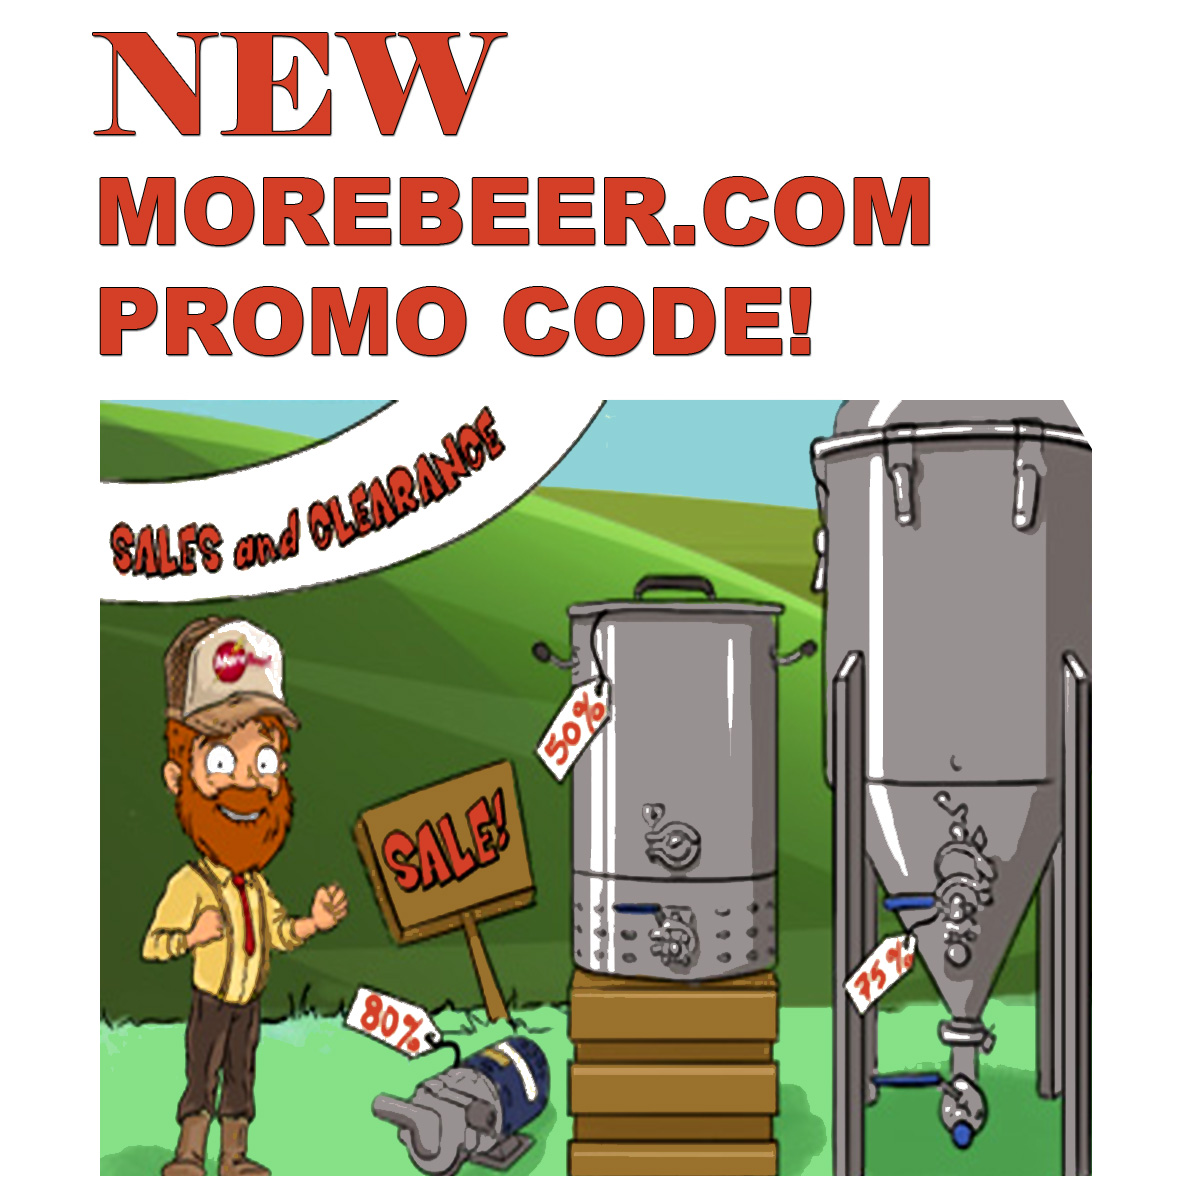 MoreBeer Save Big During the MoreBeer.com Home Brewing Sale Going On Now at MoreBeer.com Coupon Code